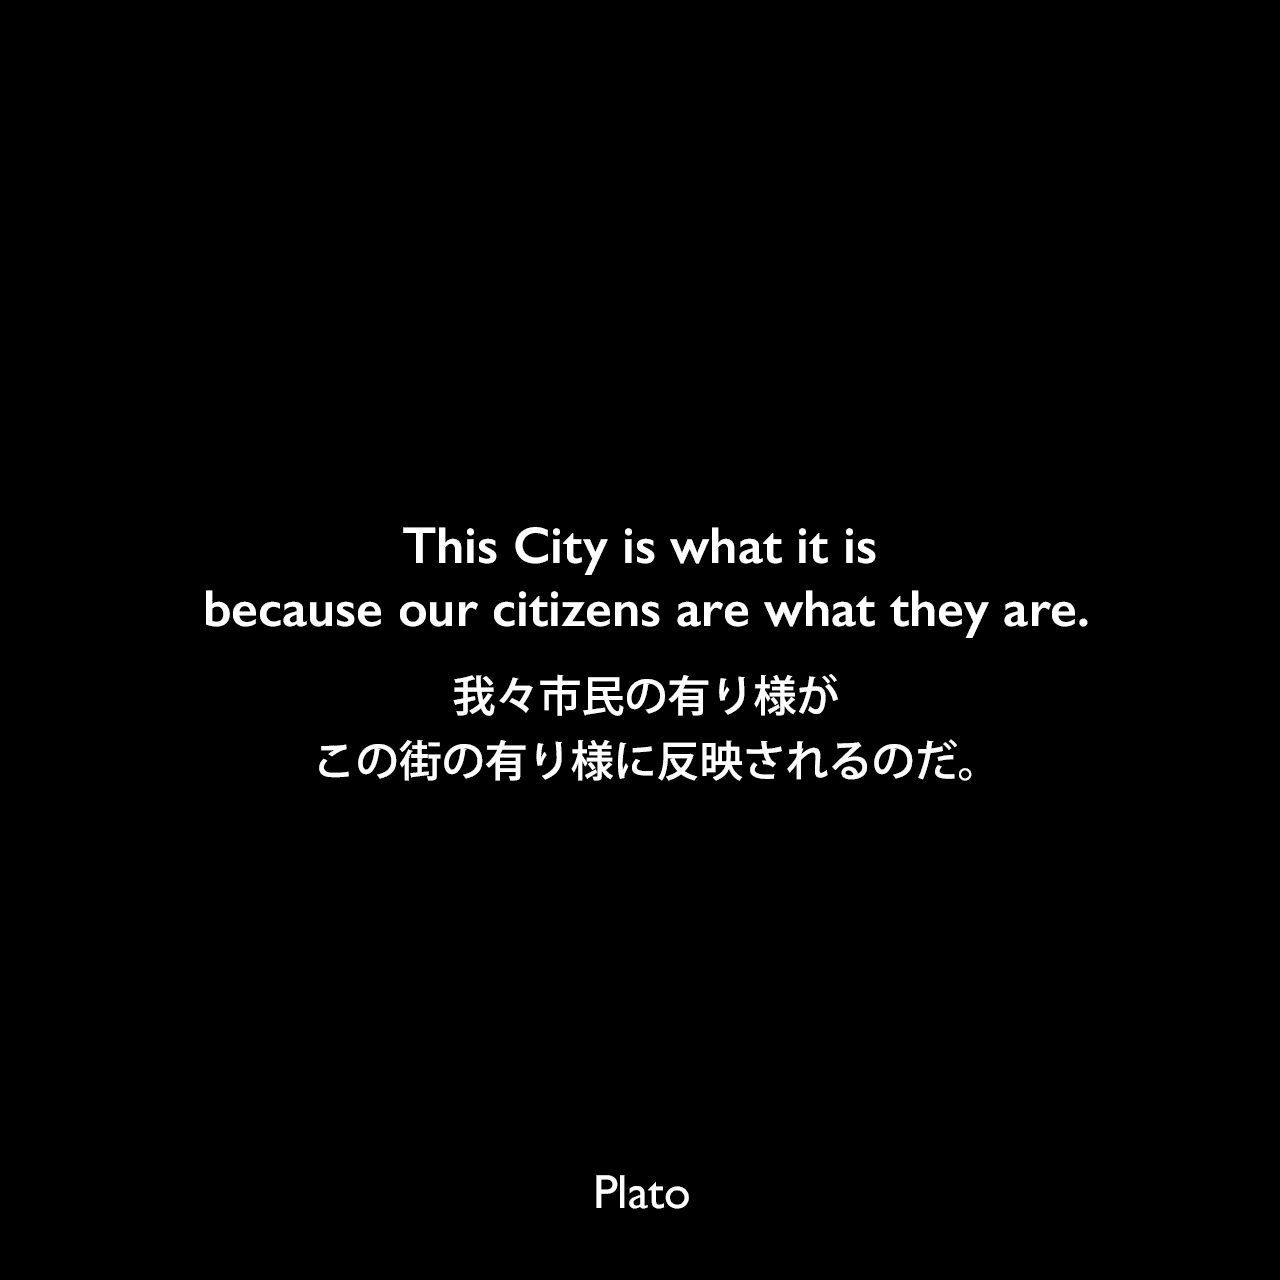 This City is what it is because our citizens are what they are.我々市民の有り様がこの街の有り様に反映されるのだ。Plato